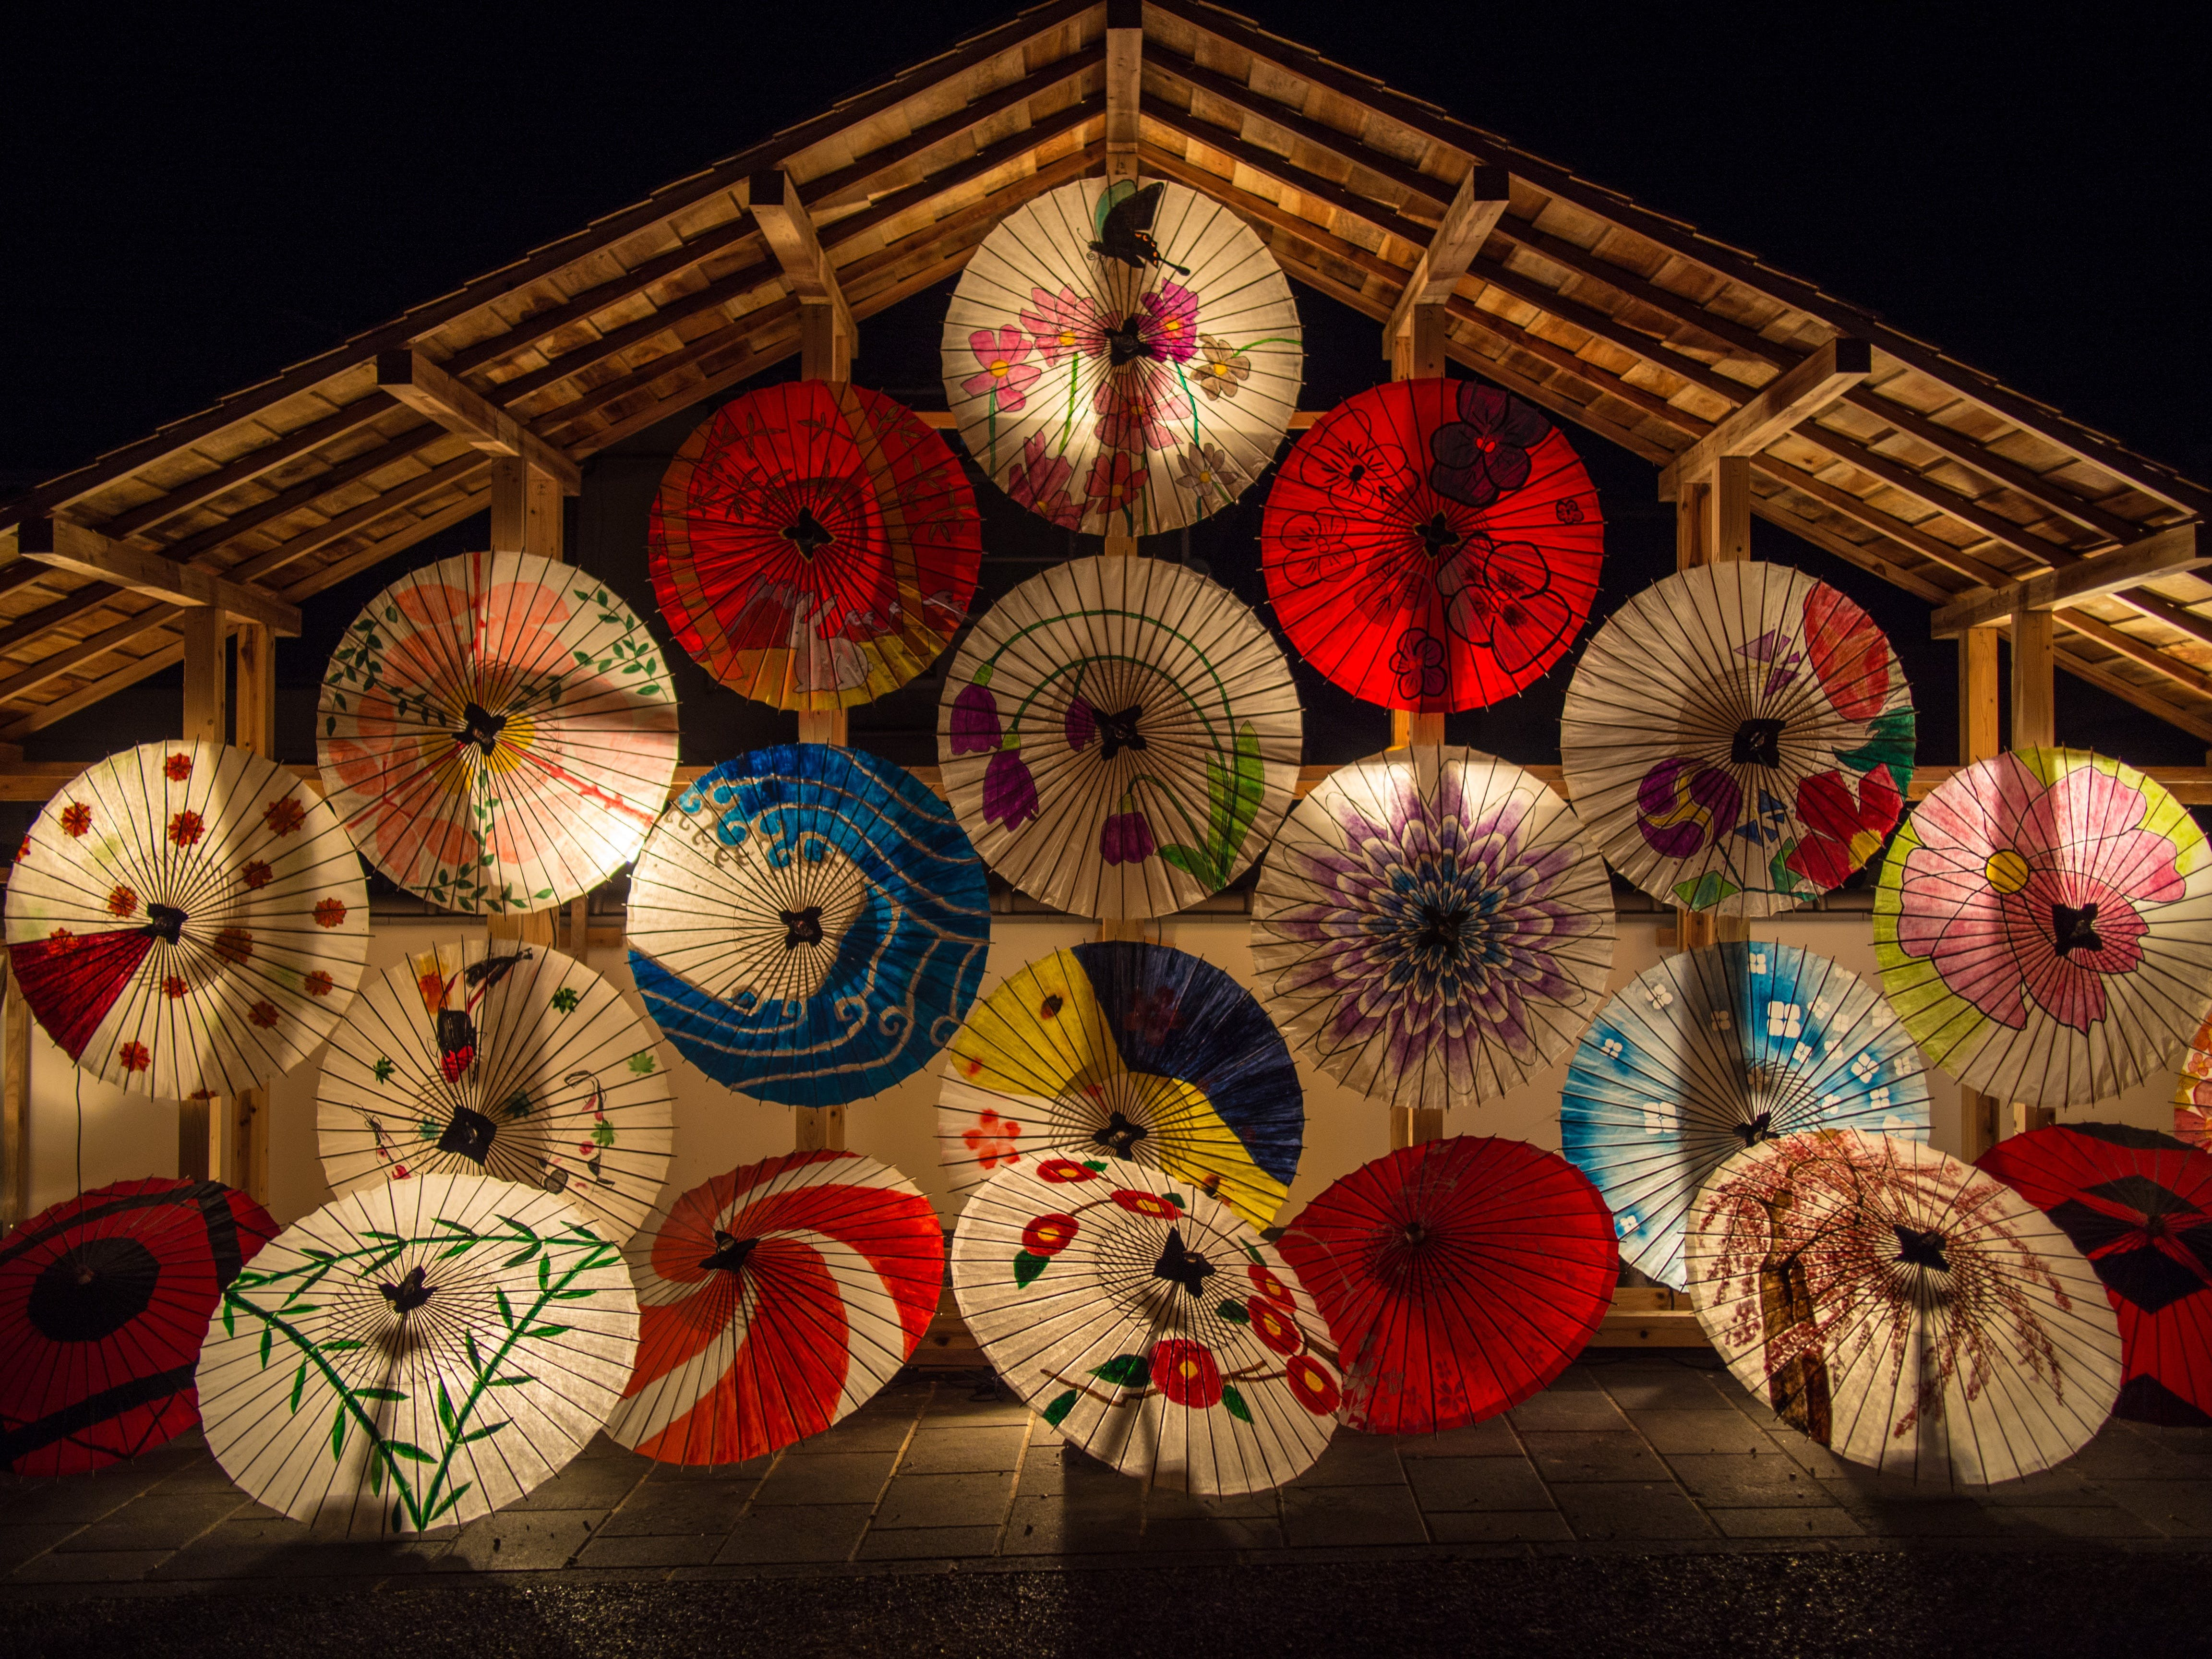 Red and White Umbrella during Night Time